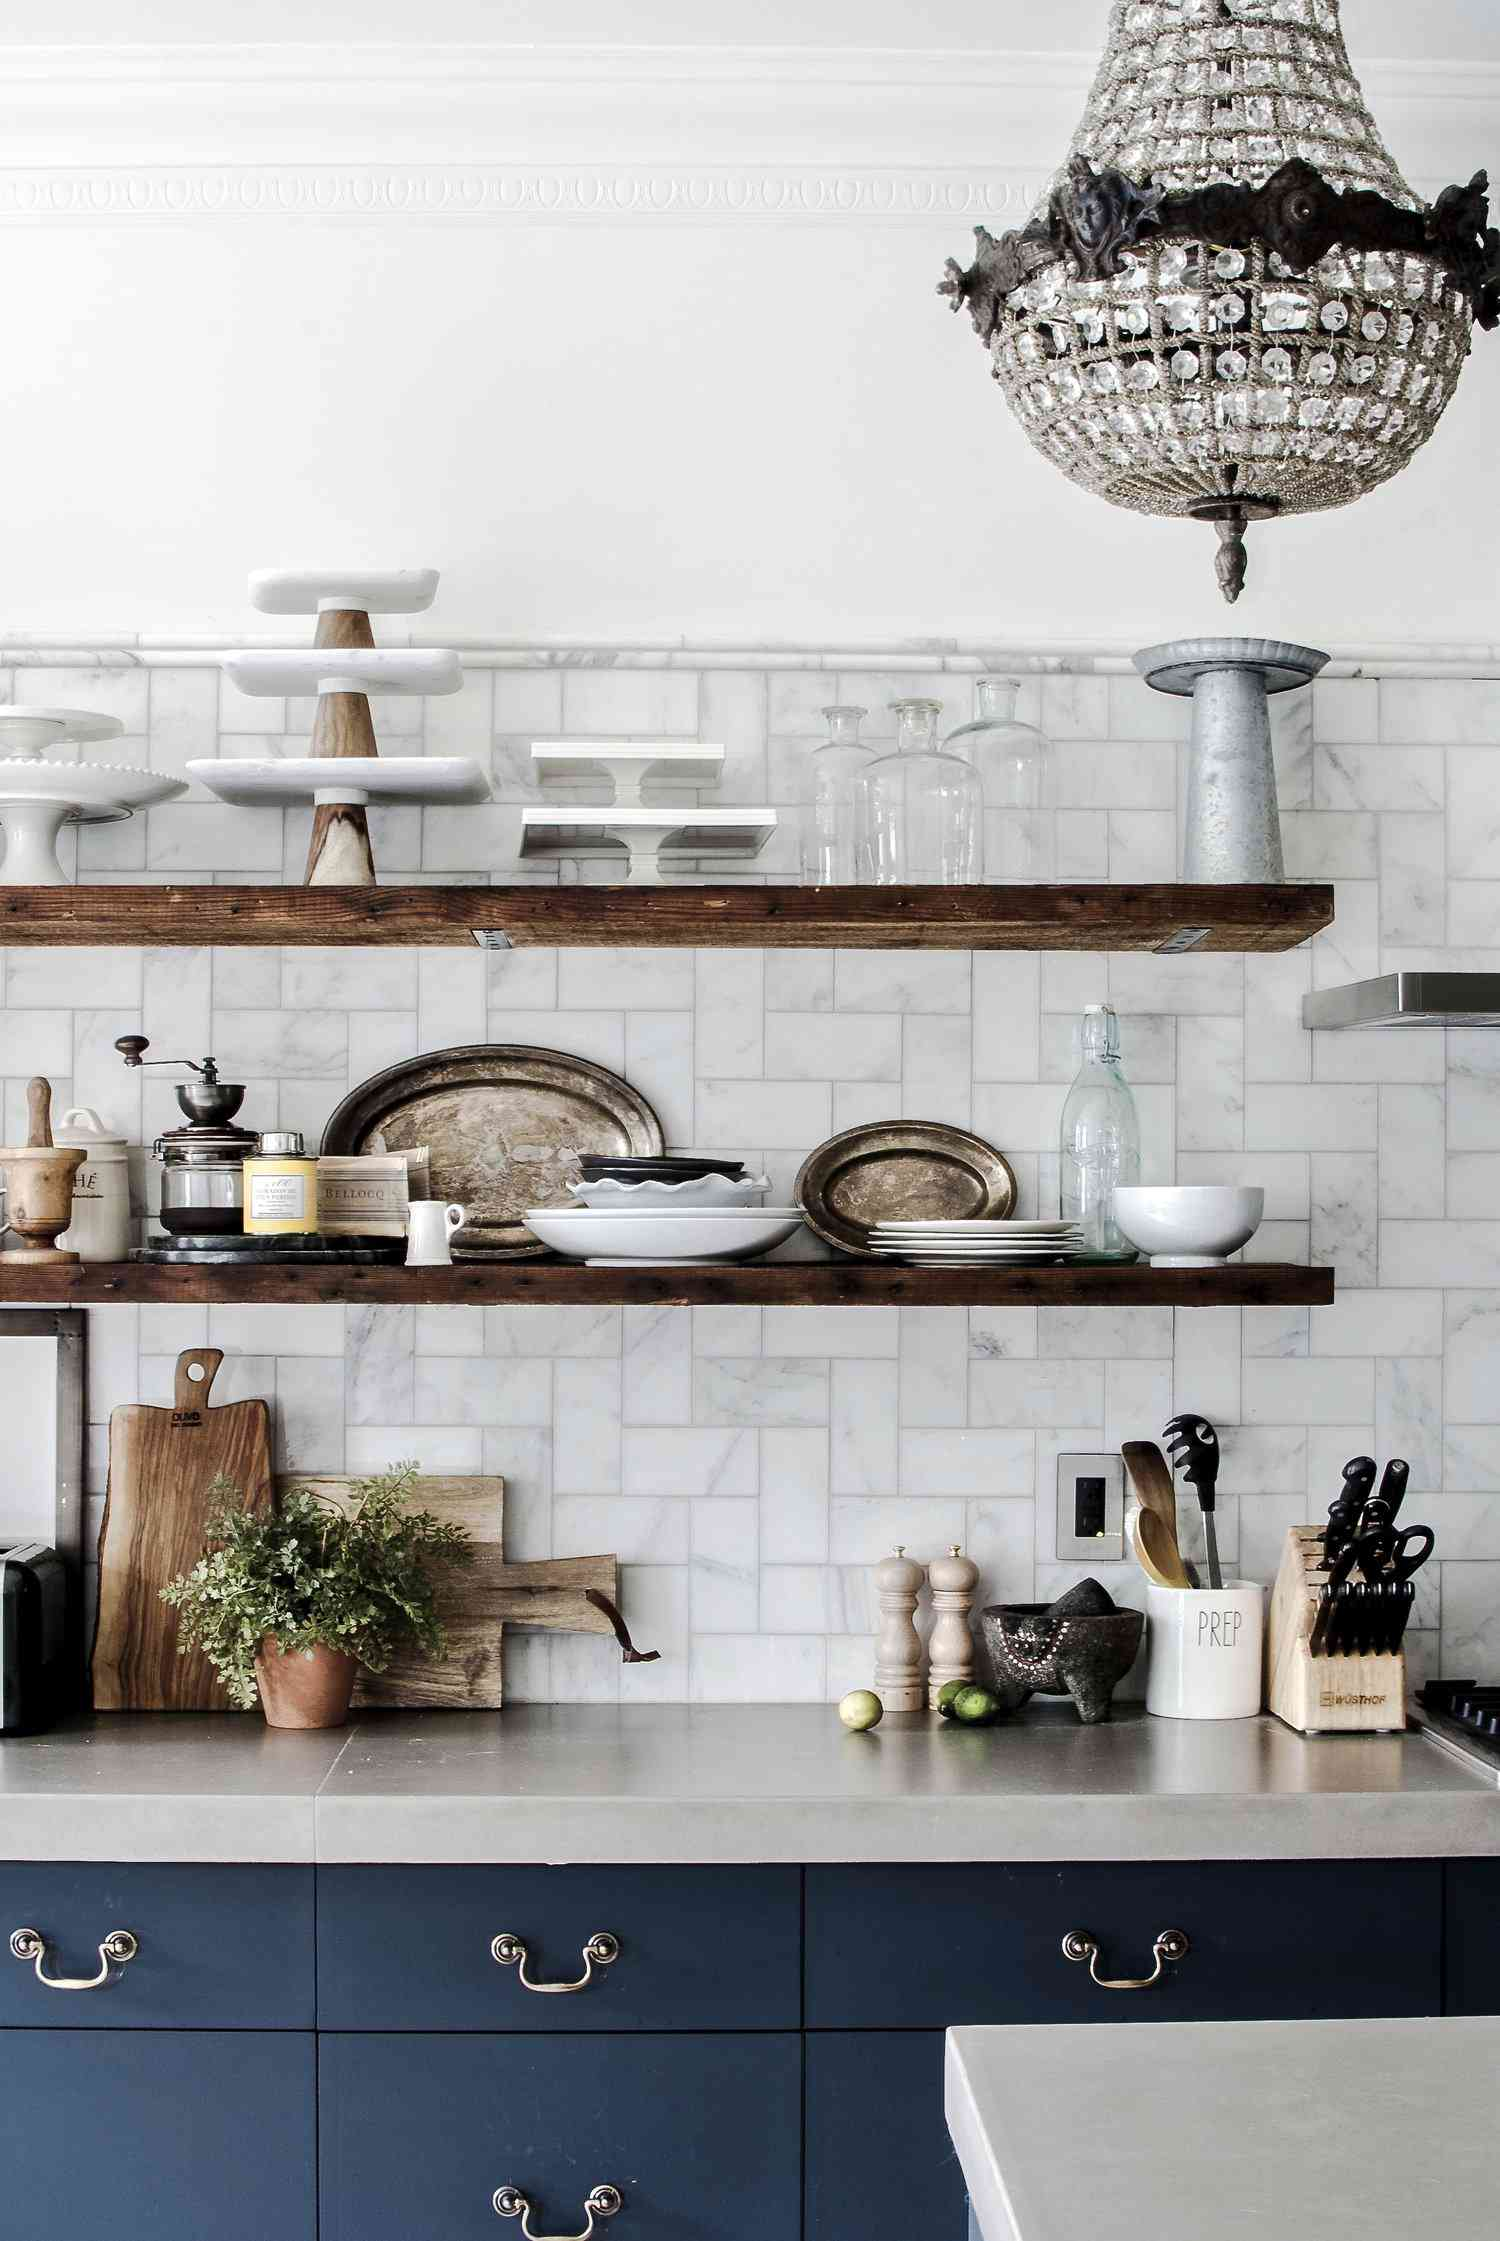 A set of kitchen shelves lined with ceramic cookware, rustic wooden items, and antique silver plates